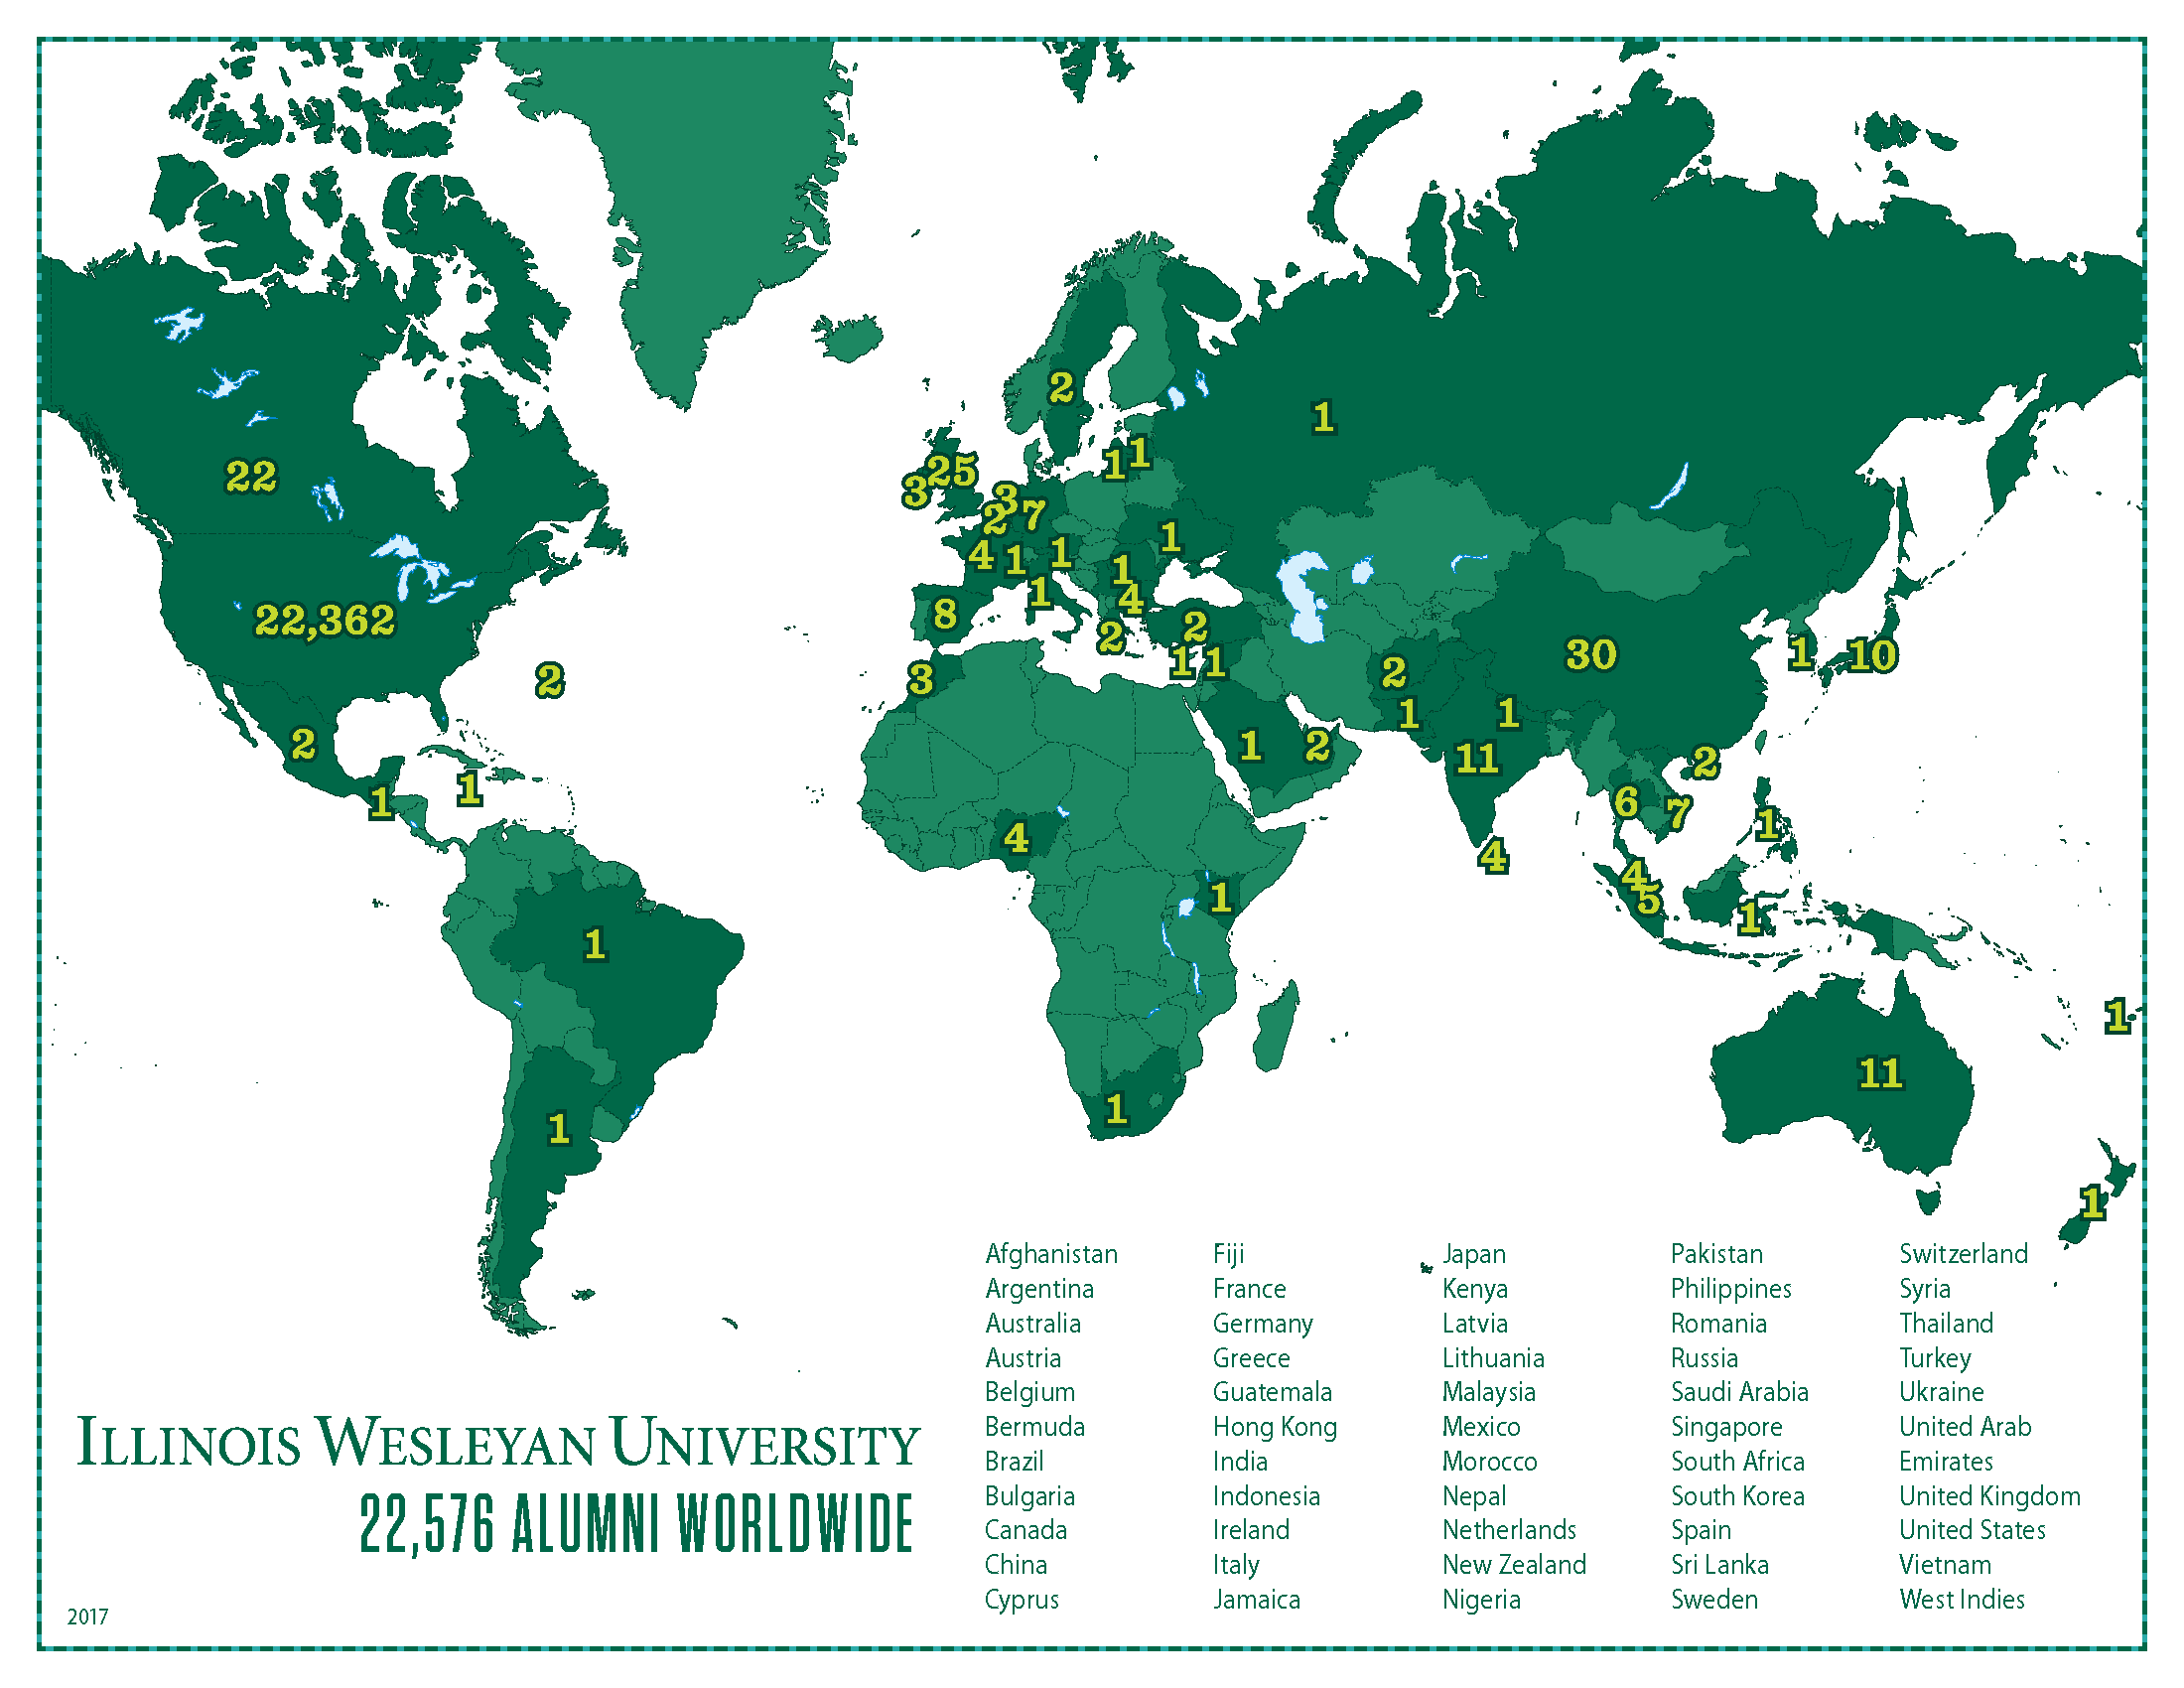 Alumni around the world